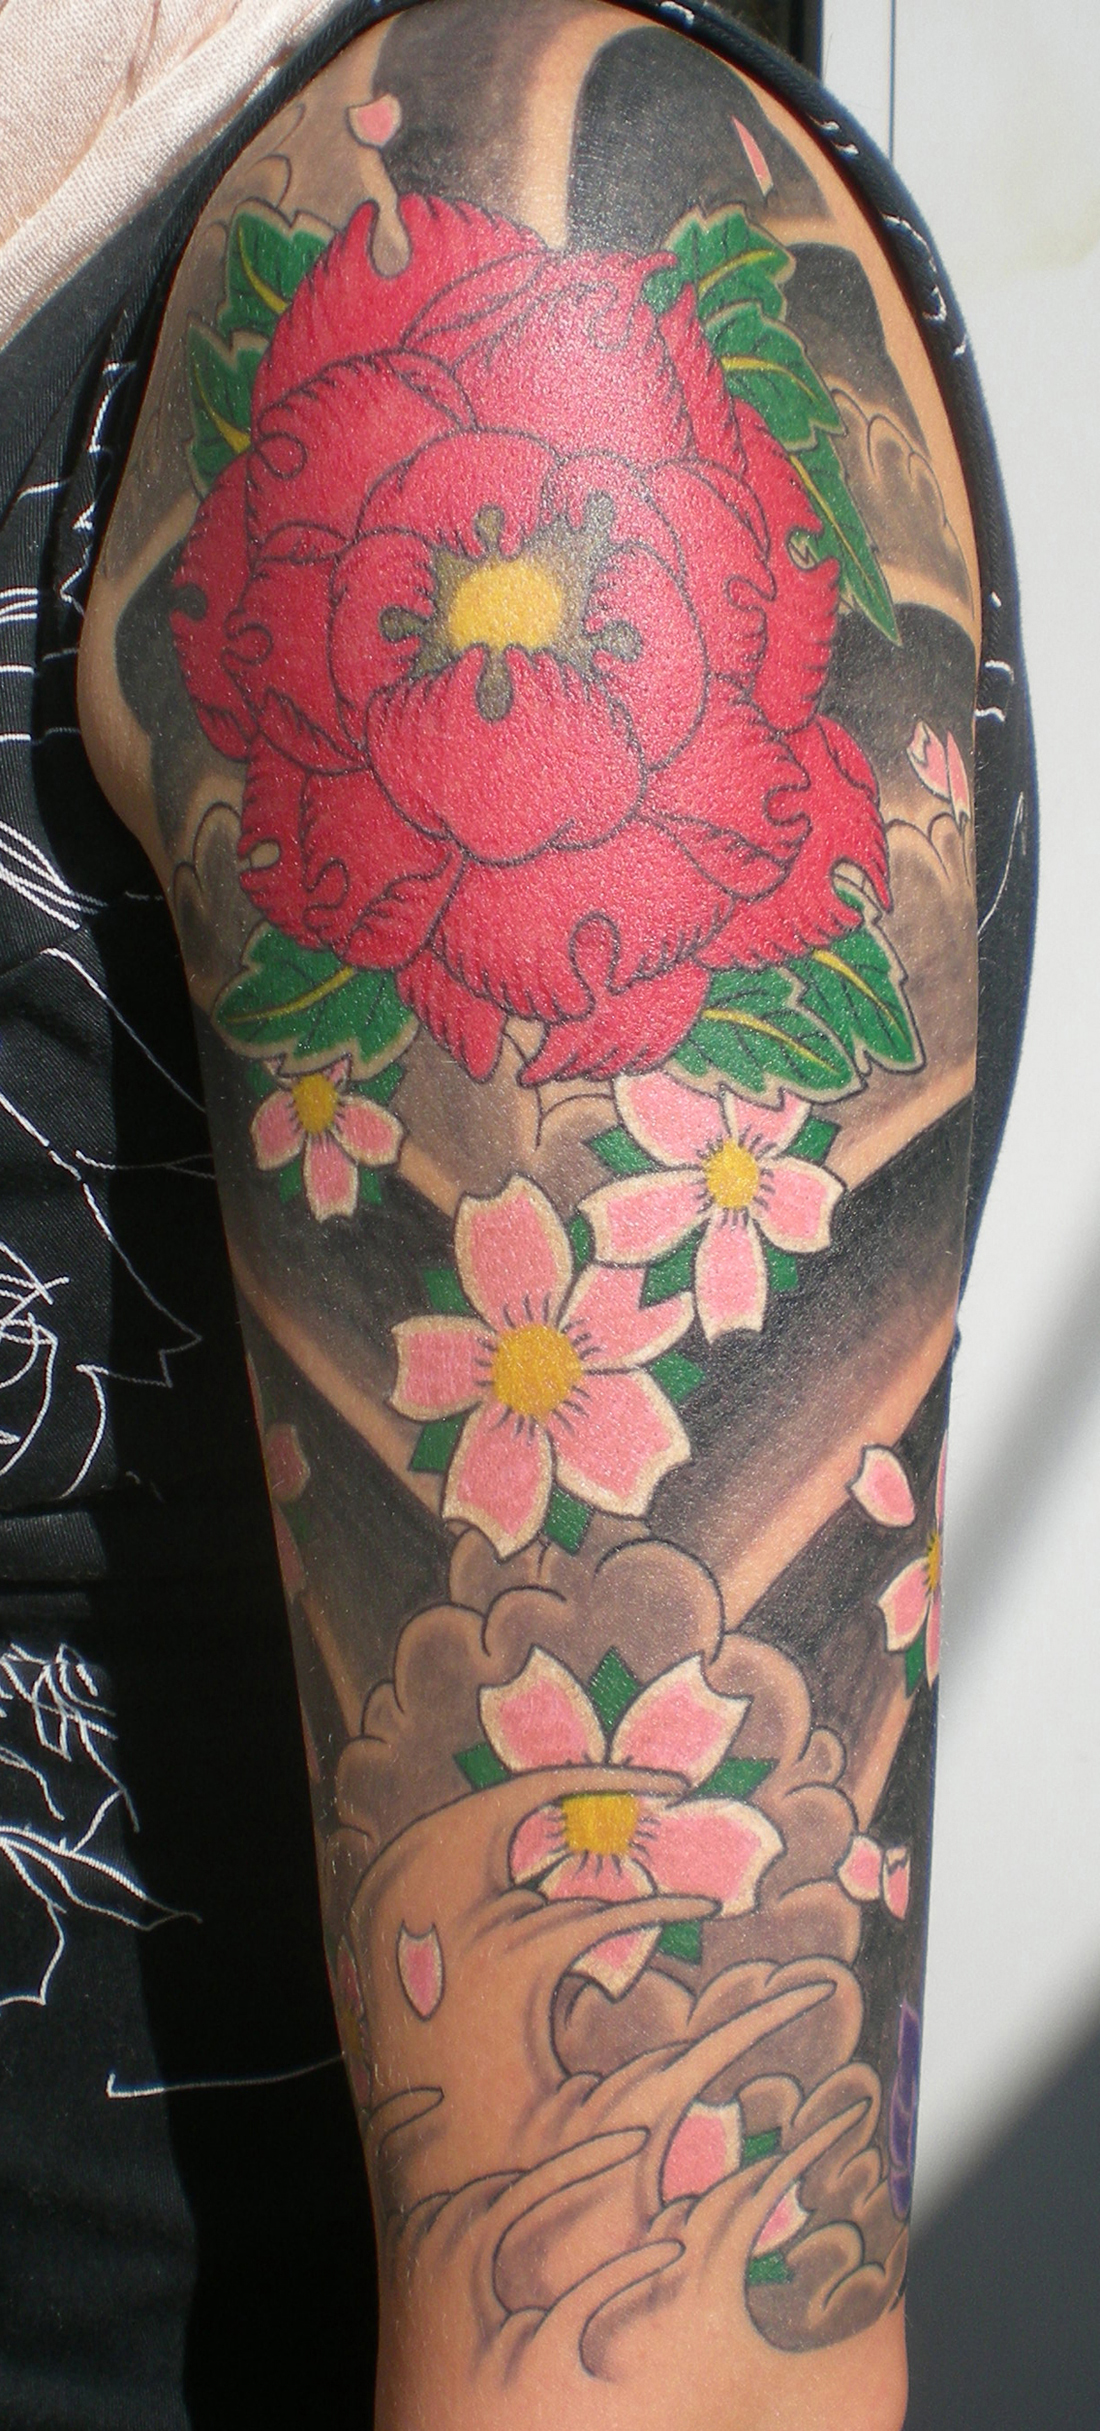 Japanese Tattoos Designs Ideas and Meaning